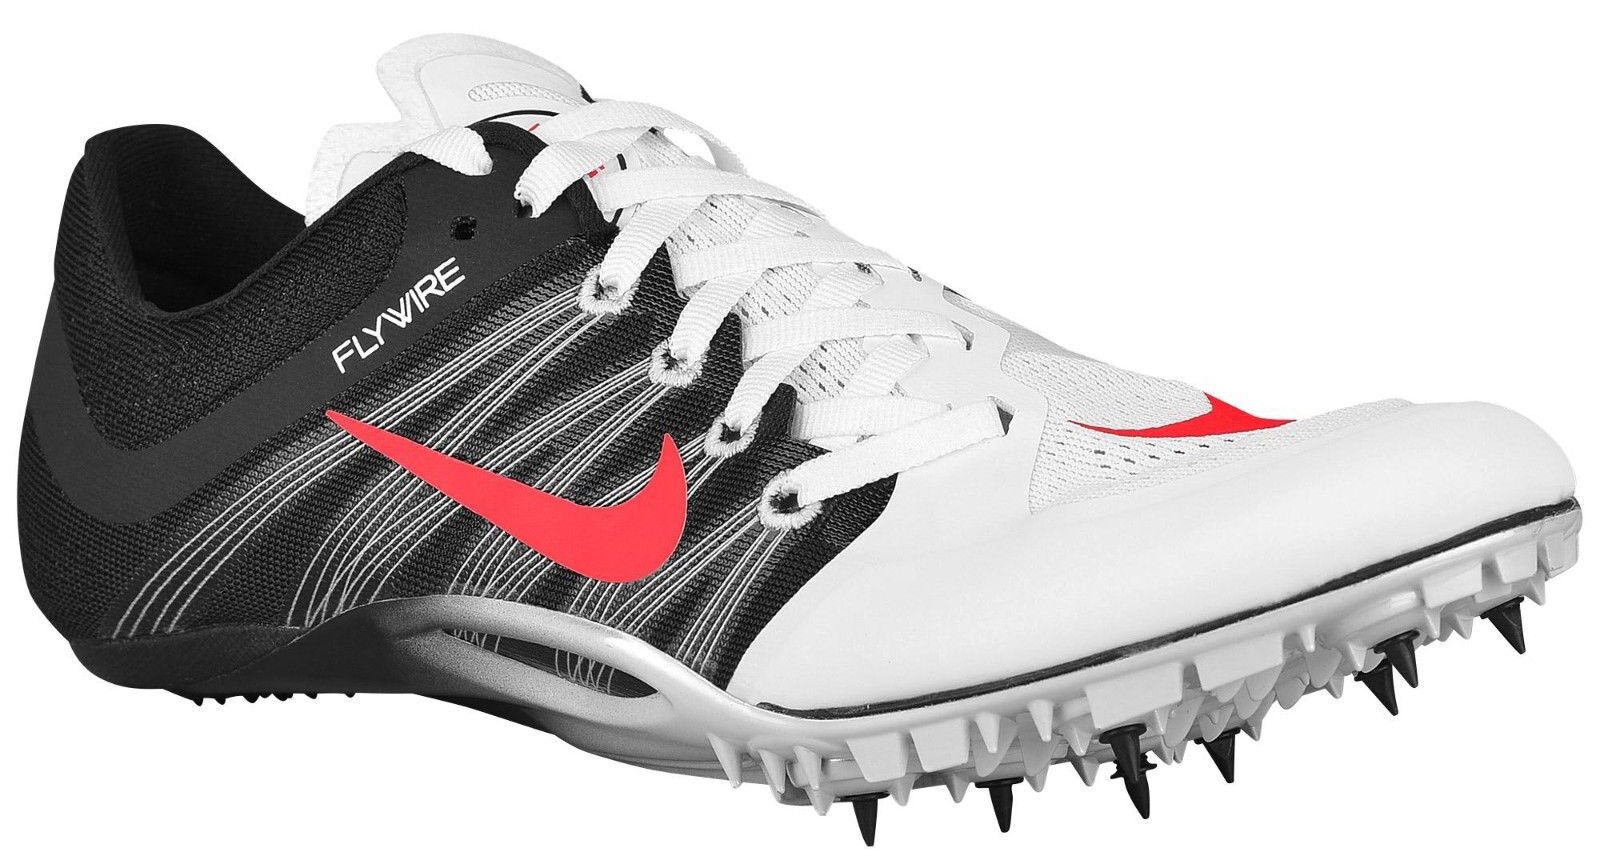 Top Track Shoes For Sprinting